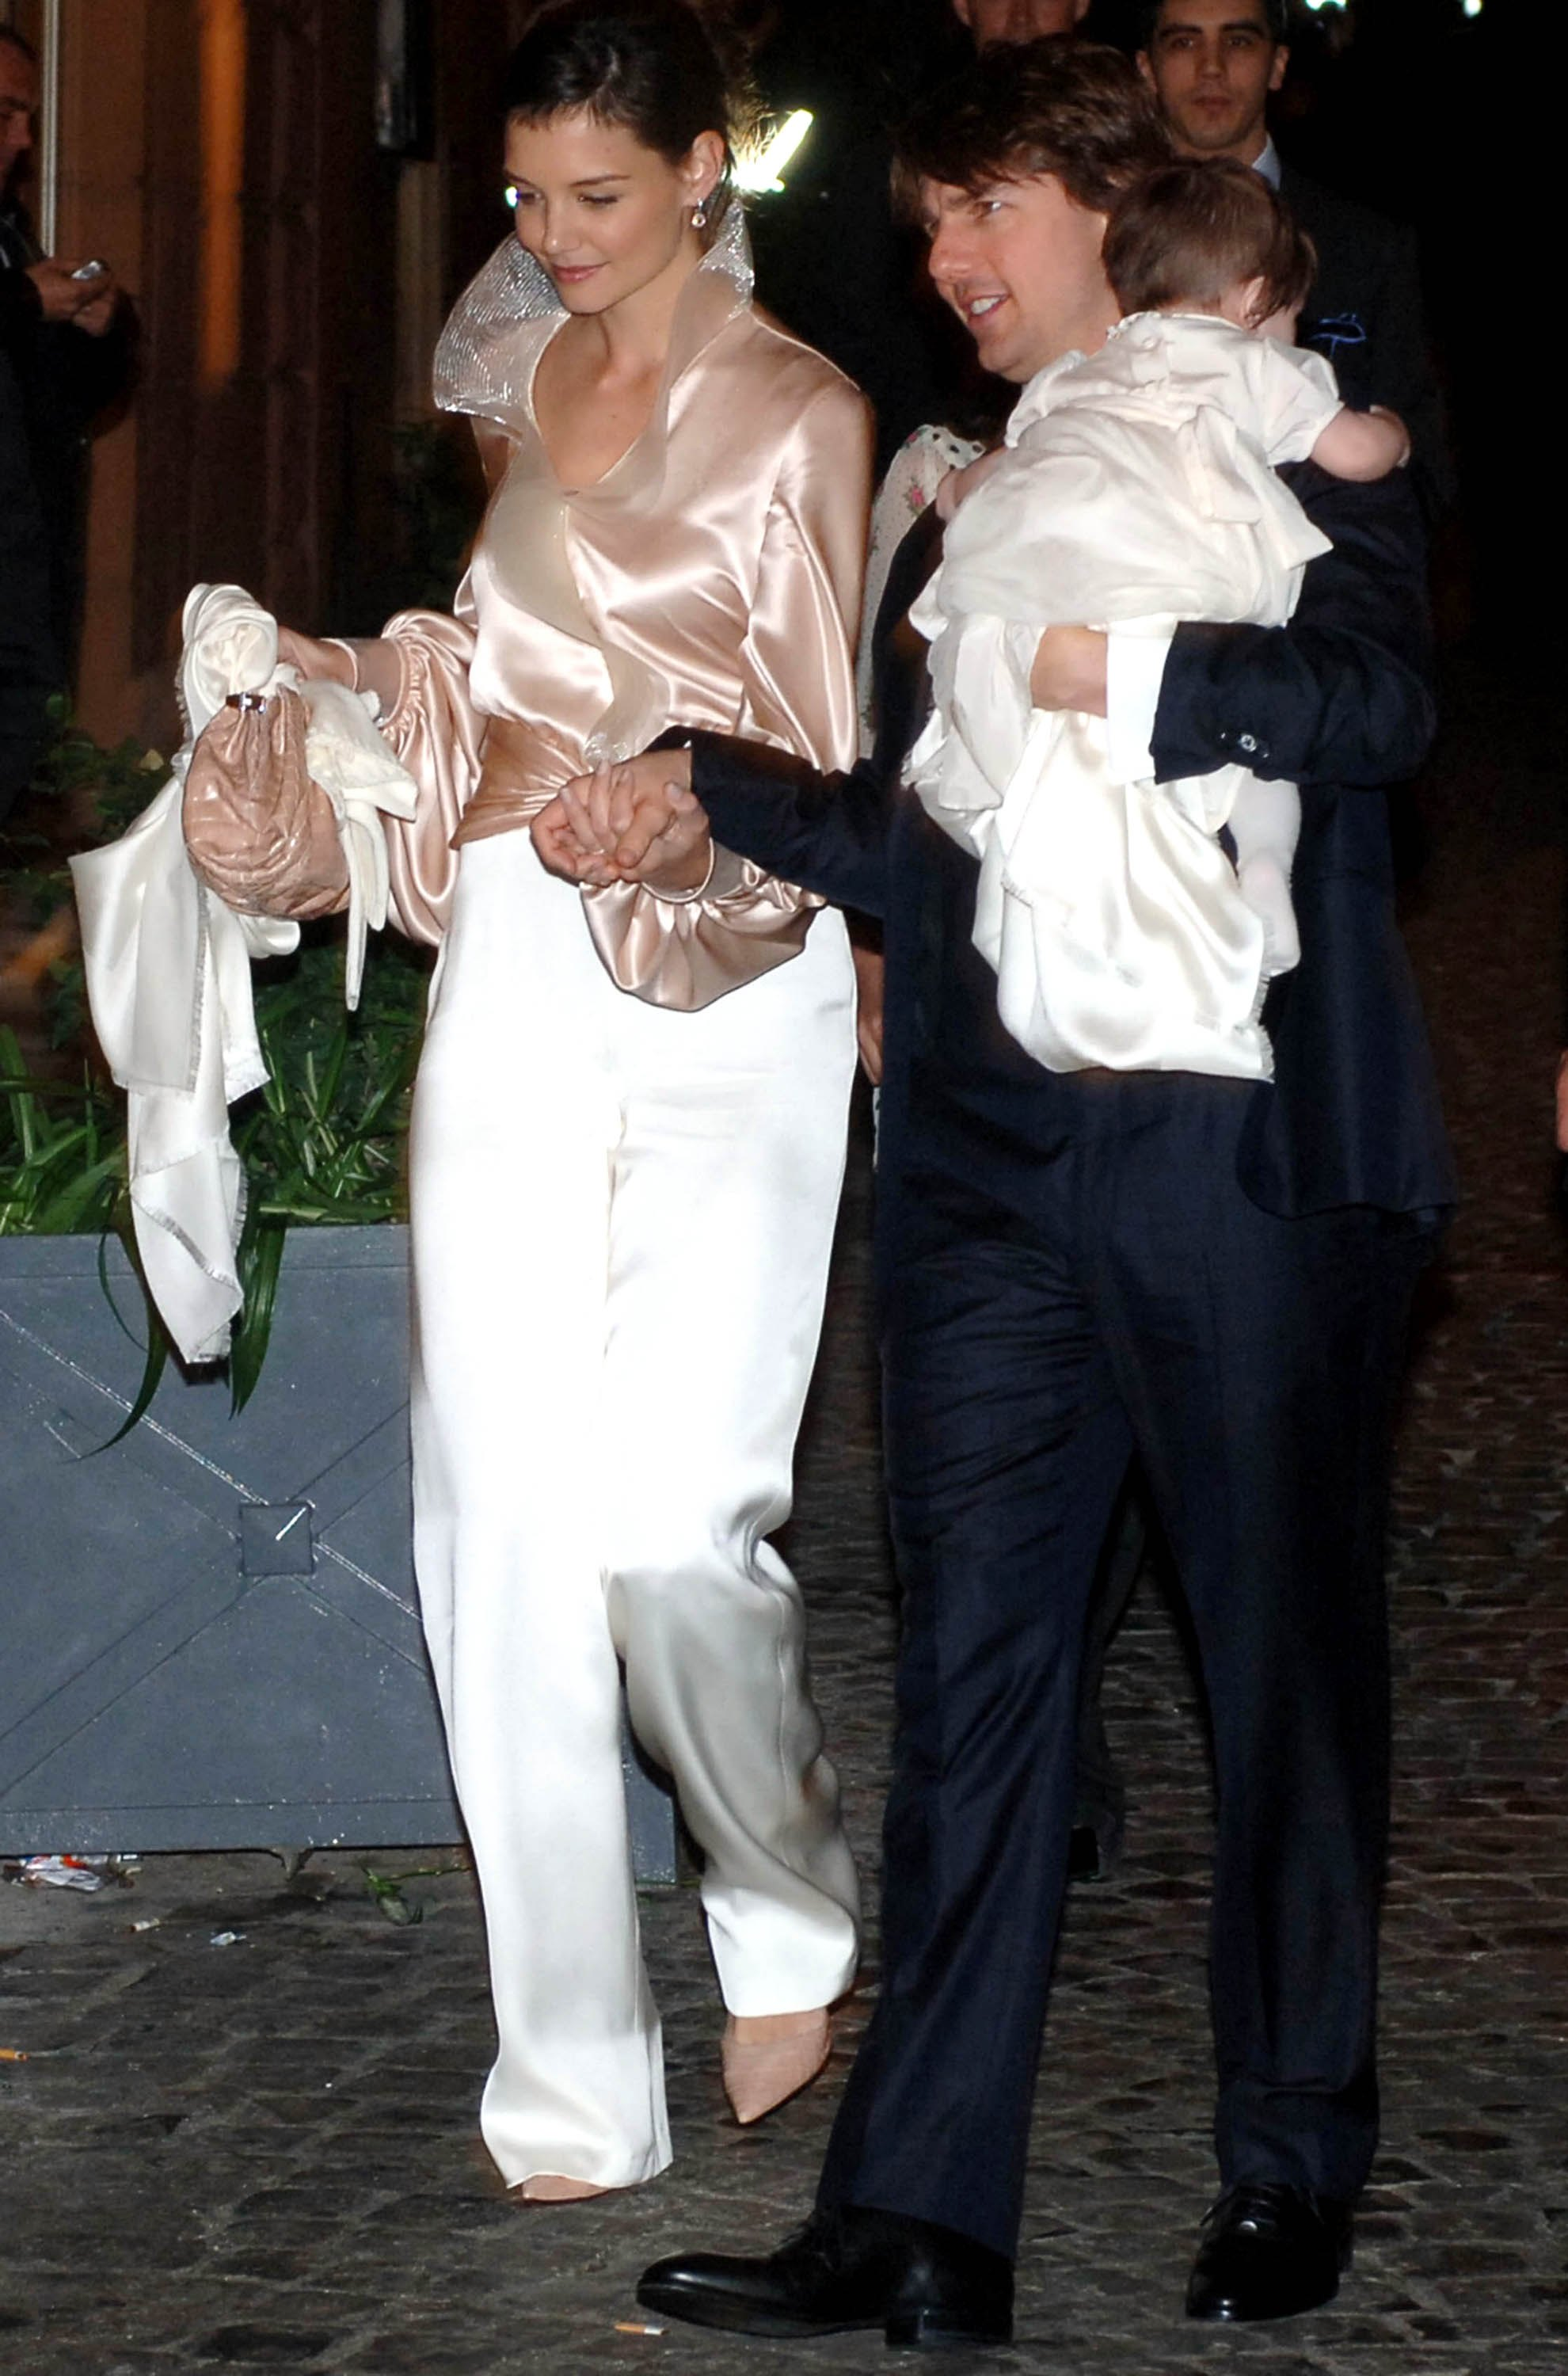 Tom Cruise, Katie Holmes and their daughter Suri arrives in a restaurant in central Rome on November 16, 2006 in Rome, Italy.